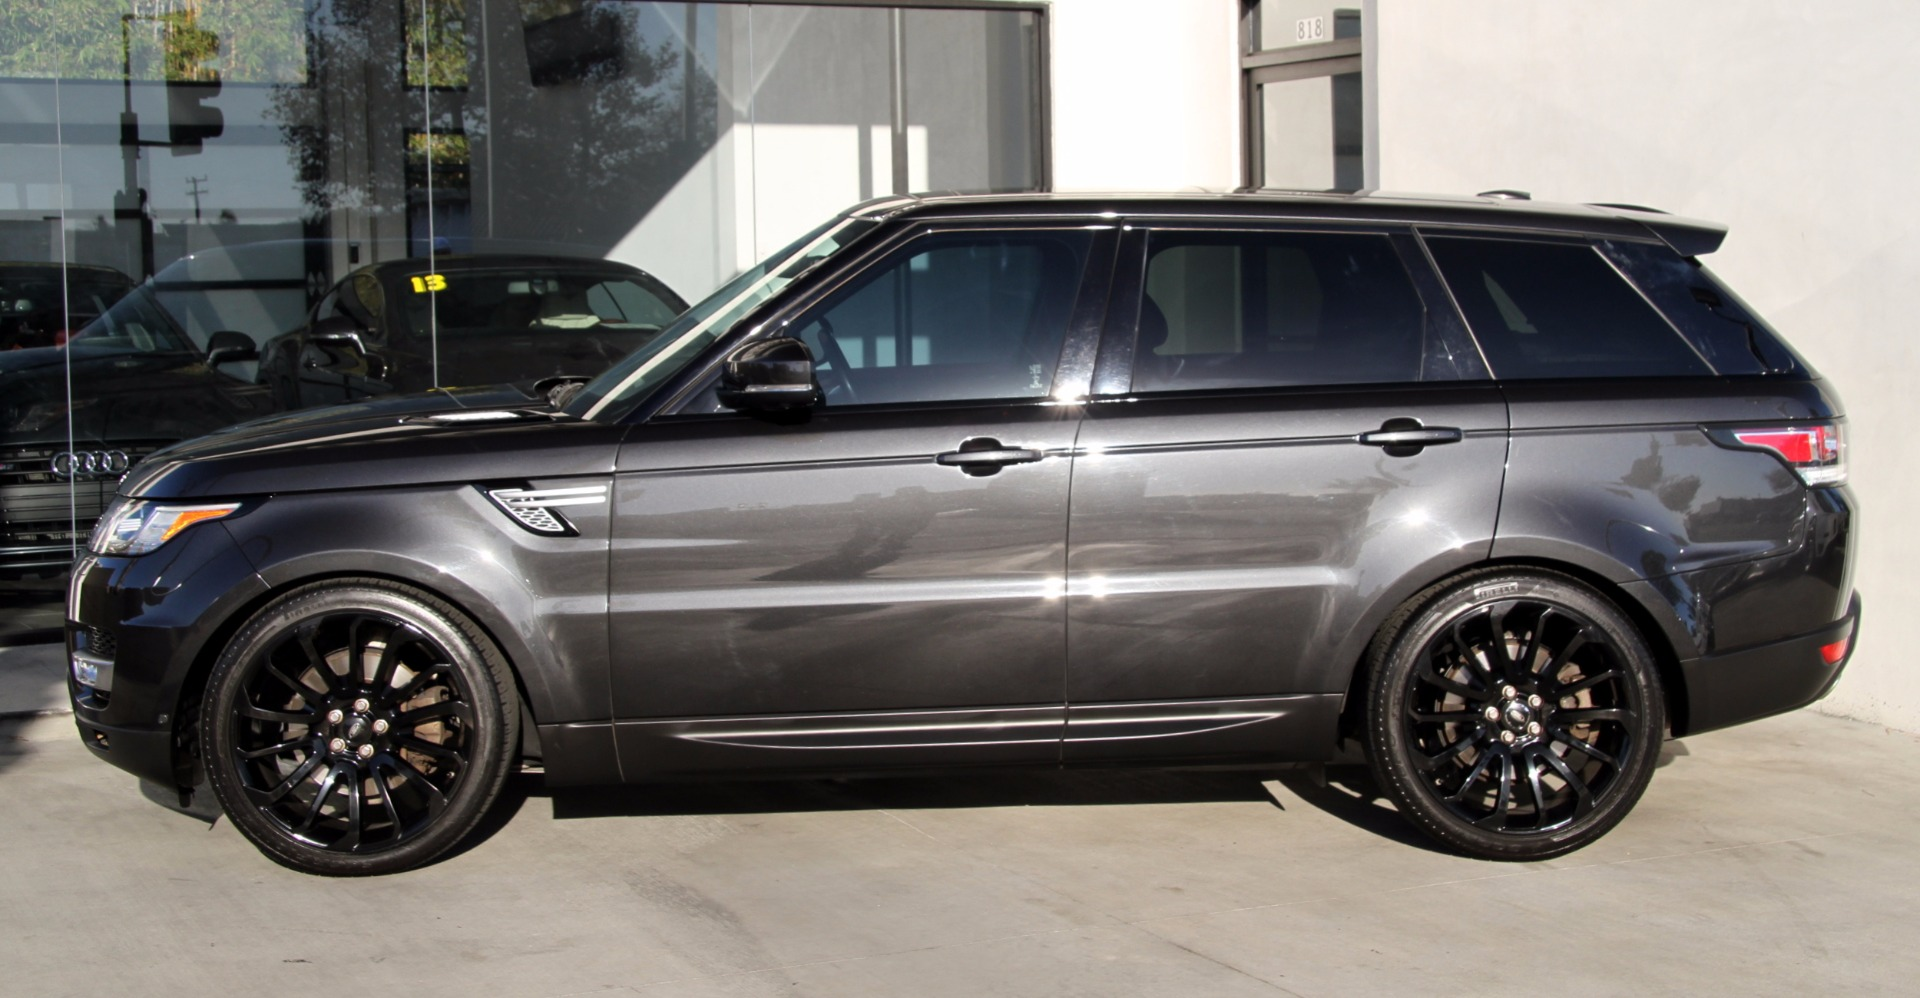 2014 Land Rover Range Rover Sport Hse Stock 6059 For